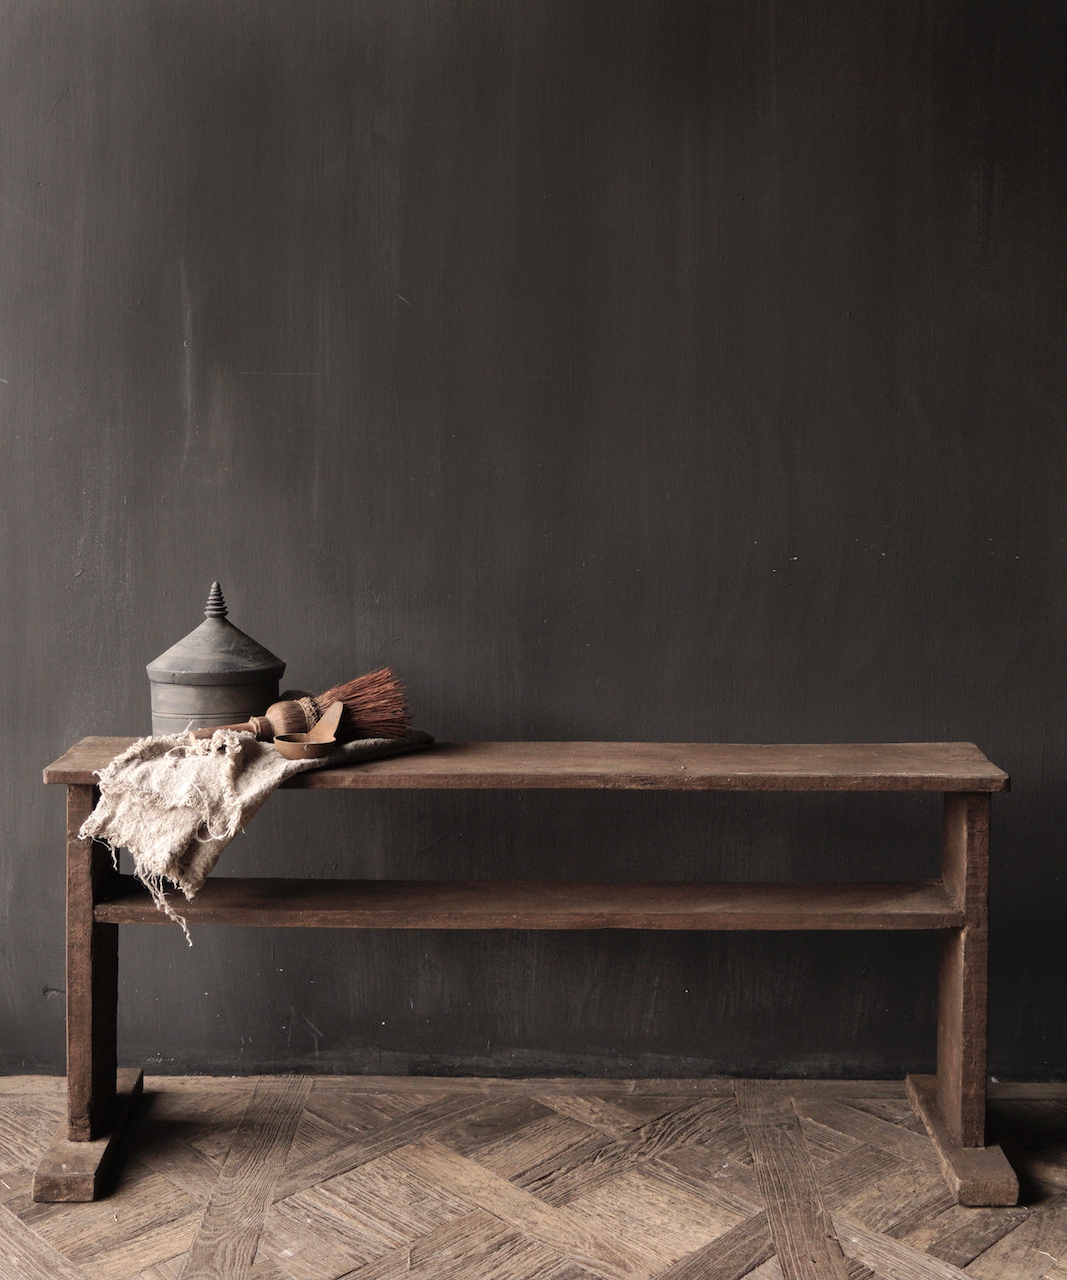 Old wooden bench with bottom shelf-1